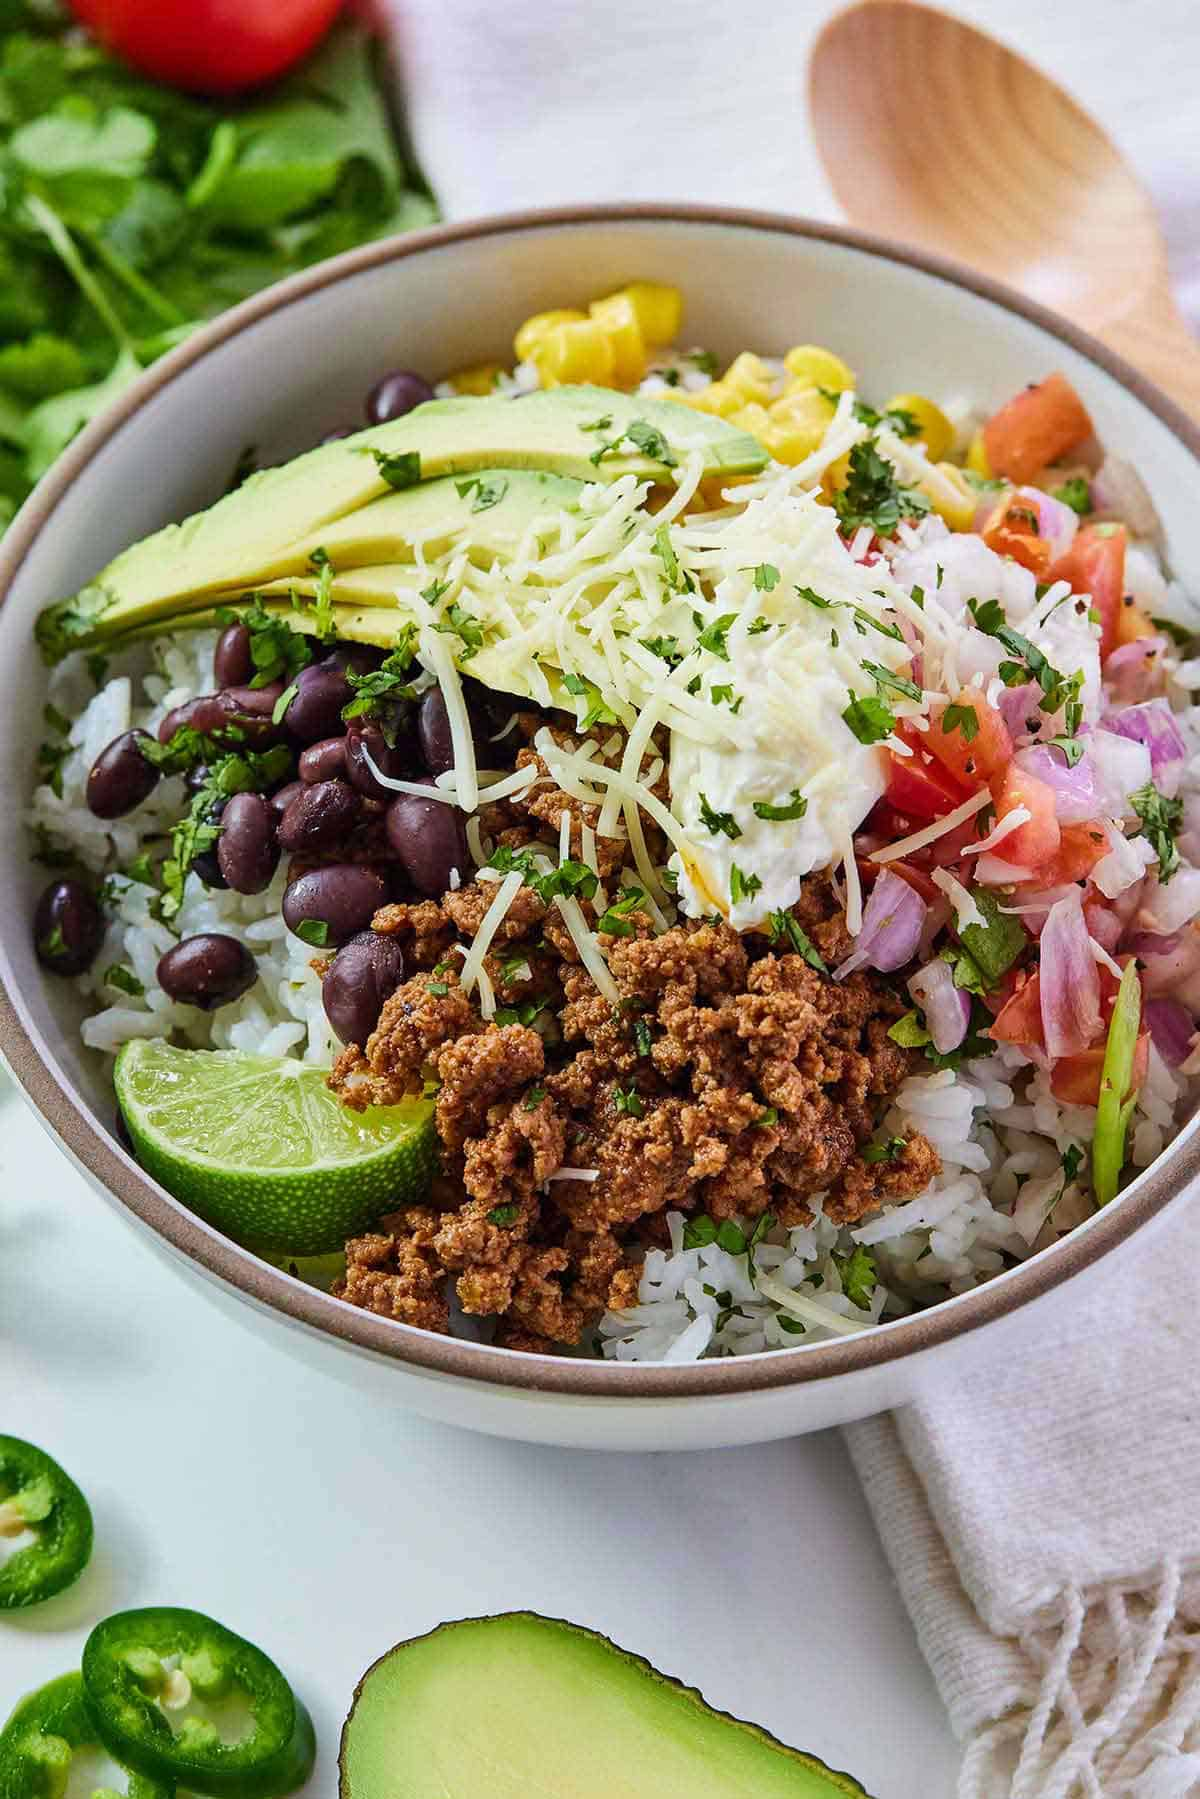 Overhead view of a ground beef taco bowl topped with pico de gallo, corn, black beans, avocado, cheese, and sour cream. Some jalapenos, cut avocado, herbs, and a wooden spoon around it.